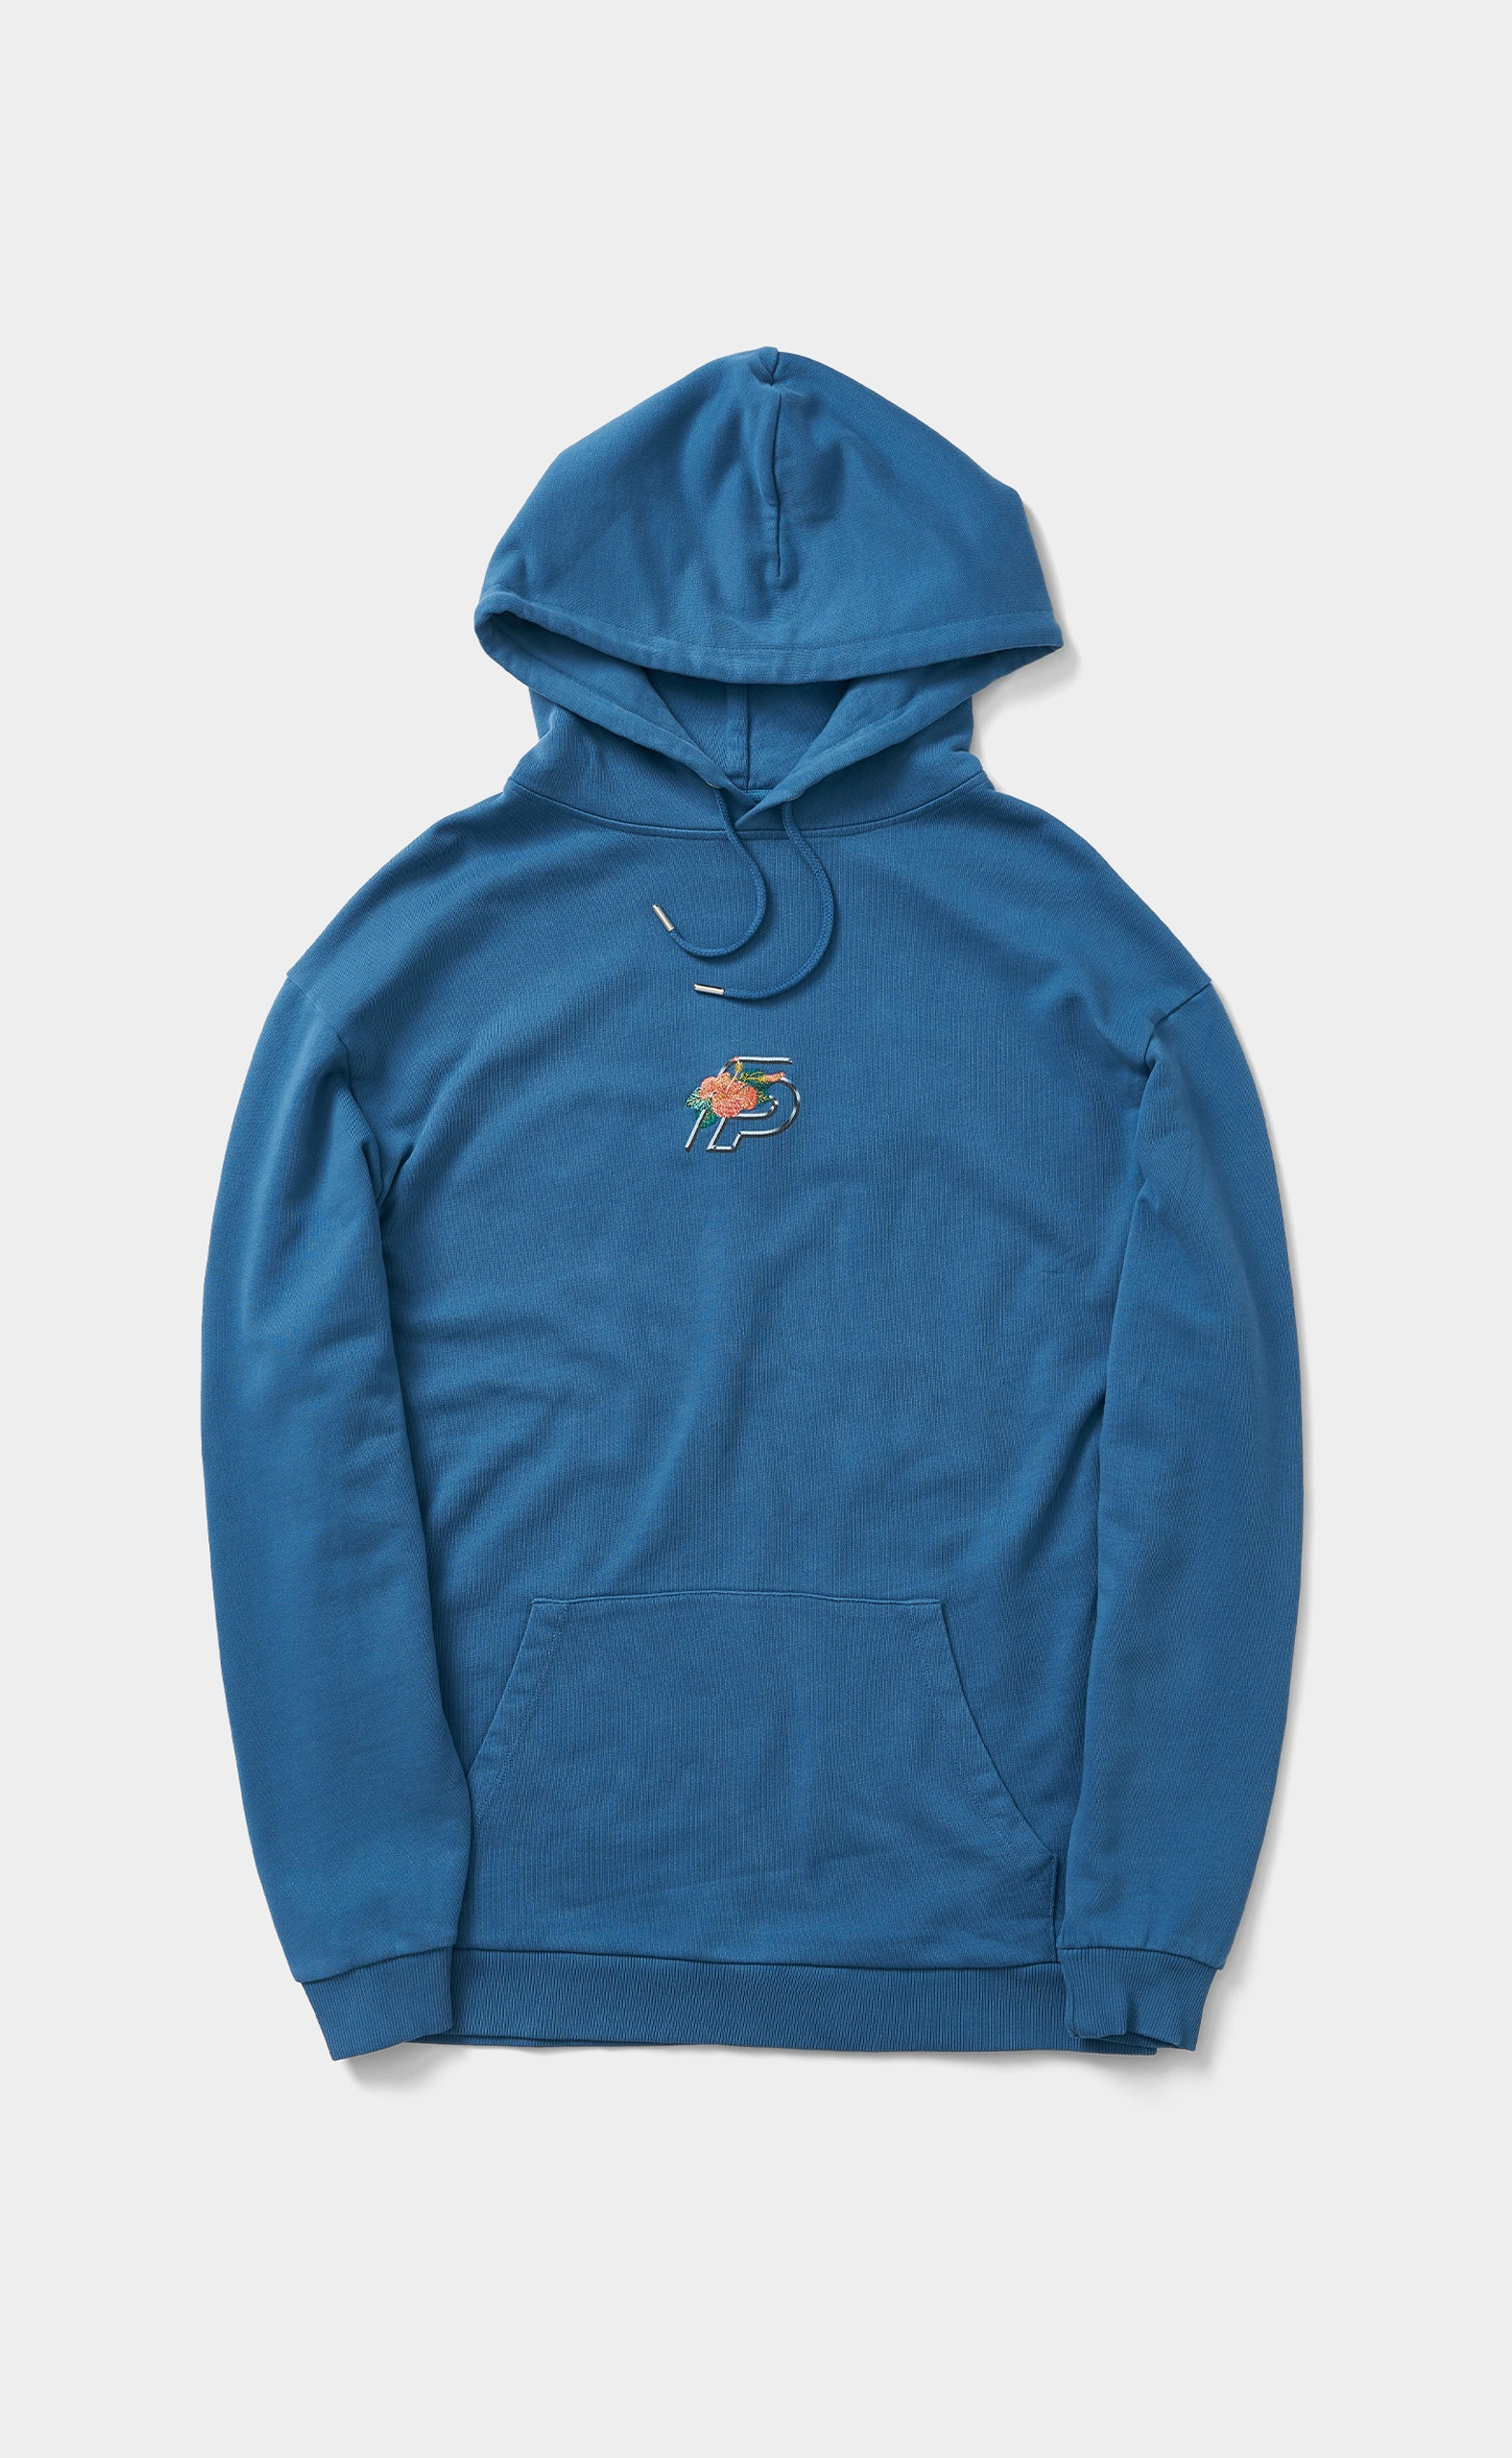 Graphic Hoodie FP Flower Saxony Blue - men